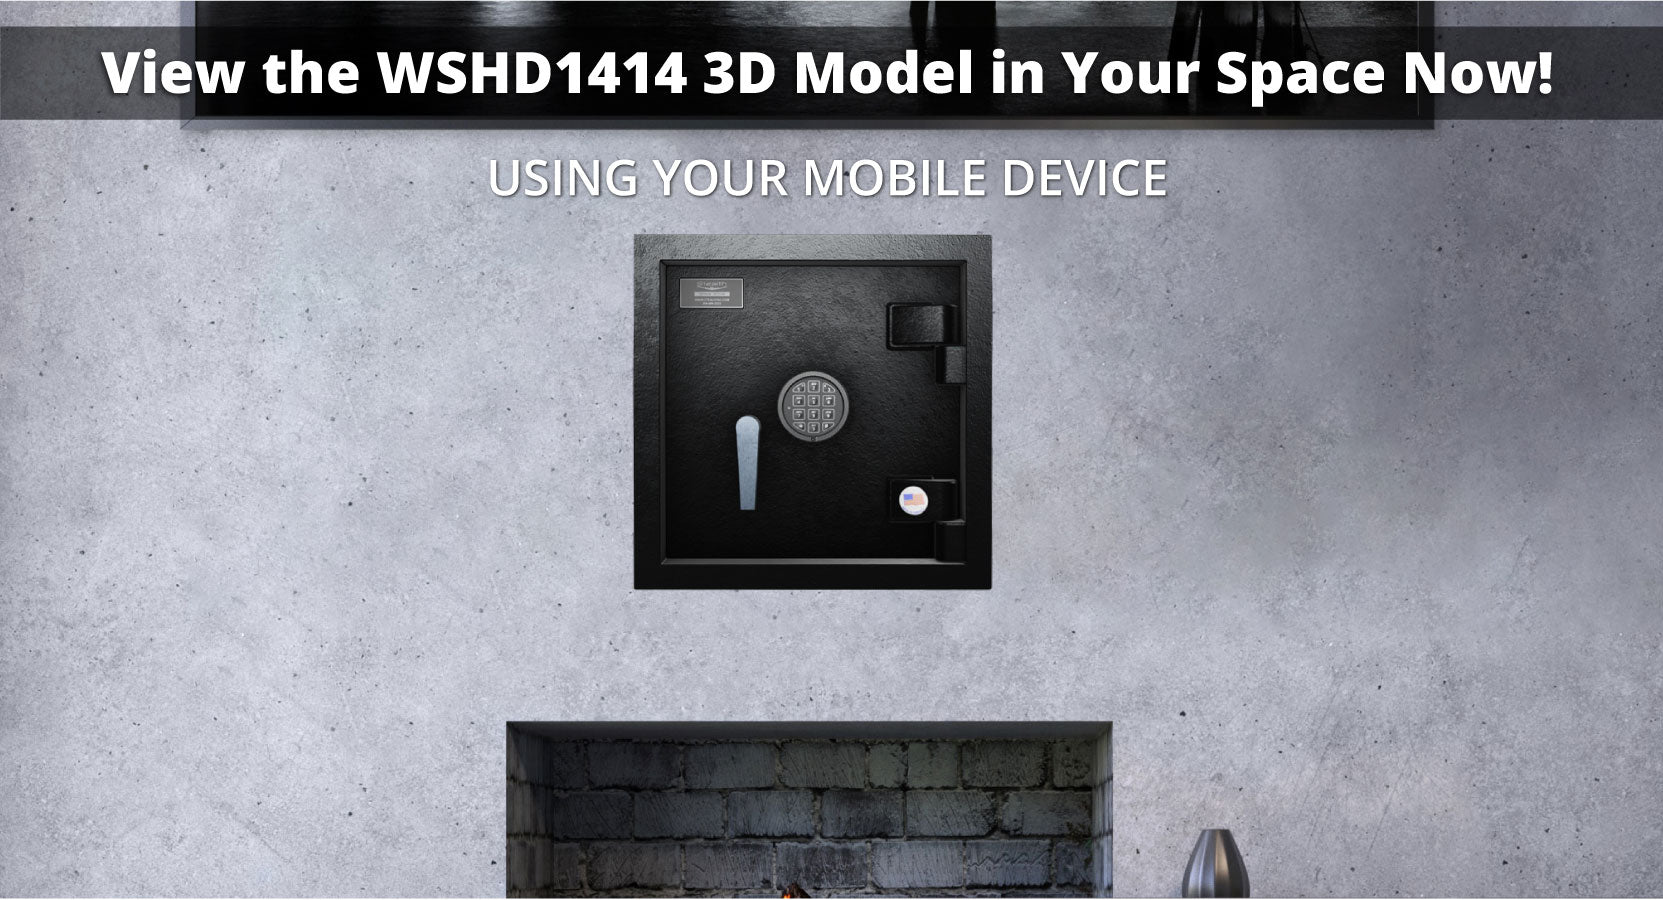 Stealth WSHD1414 Wall Safe 3D Model and Augmented Reality AR Experience Available